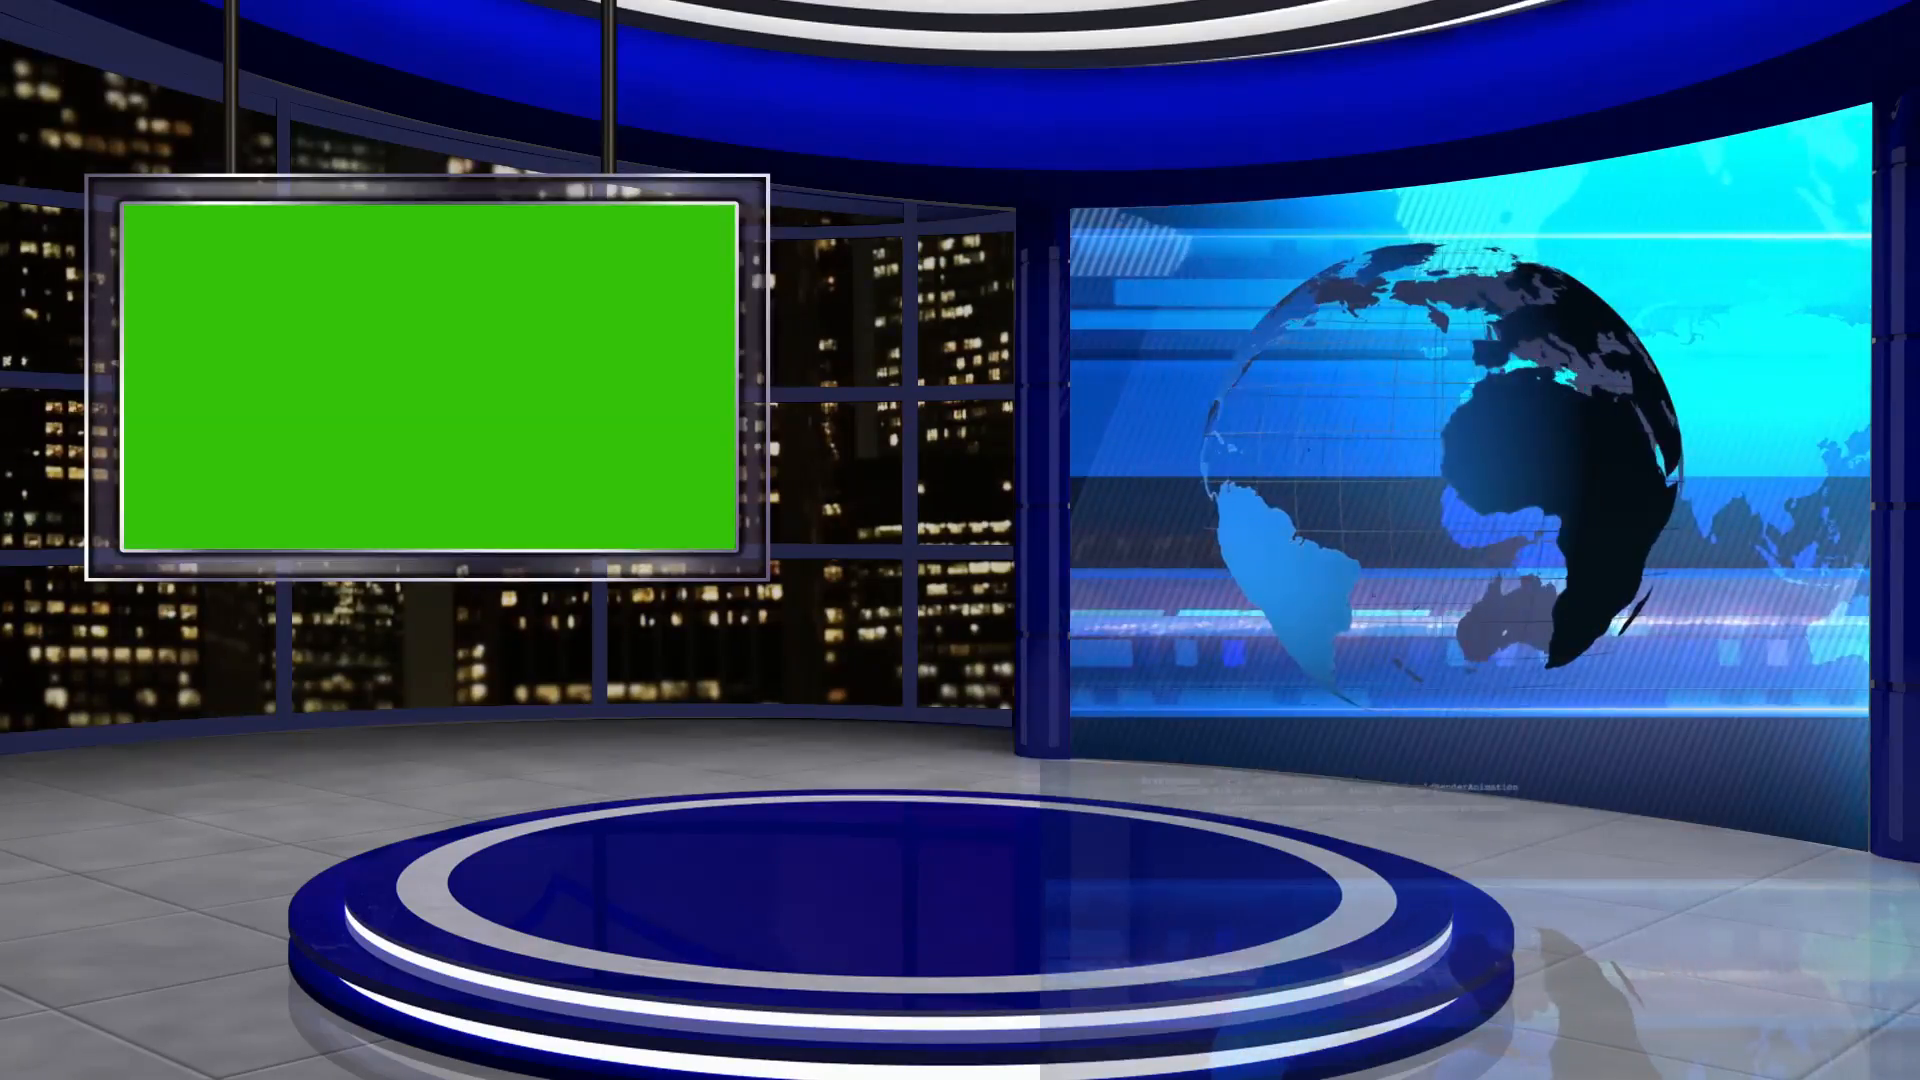 Image result for news studio Green screen backgrounds